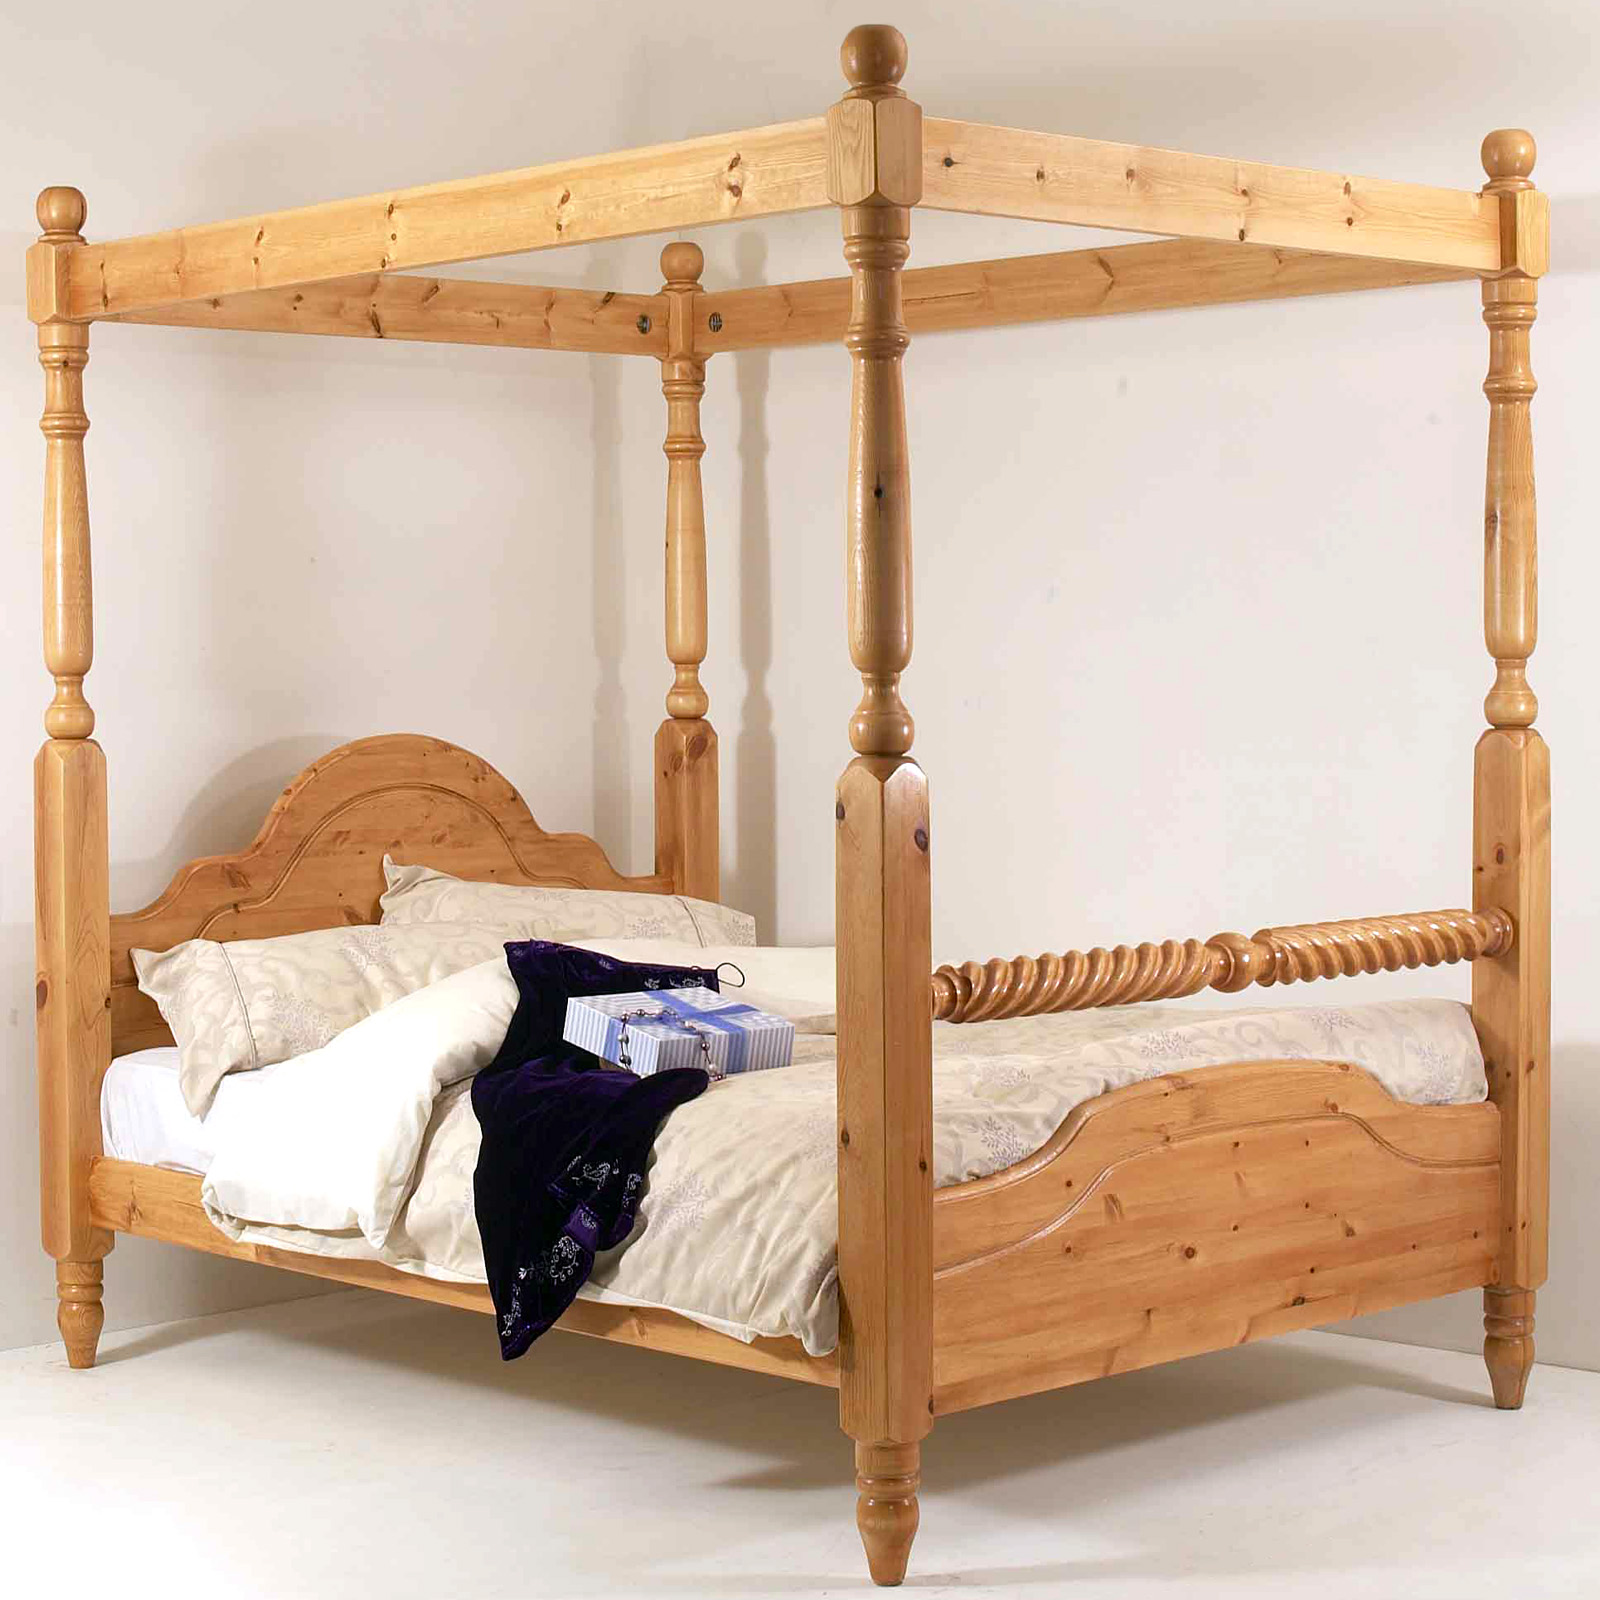 5ft classic rail four poster bed king size with barley twist